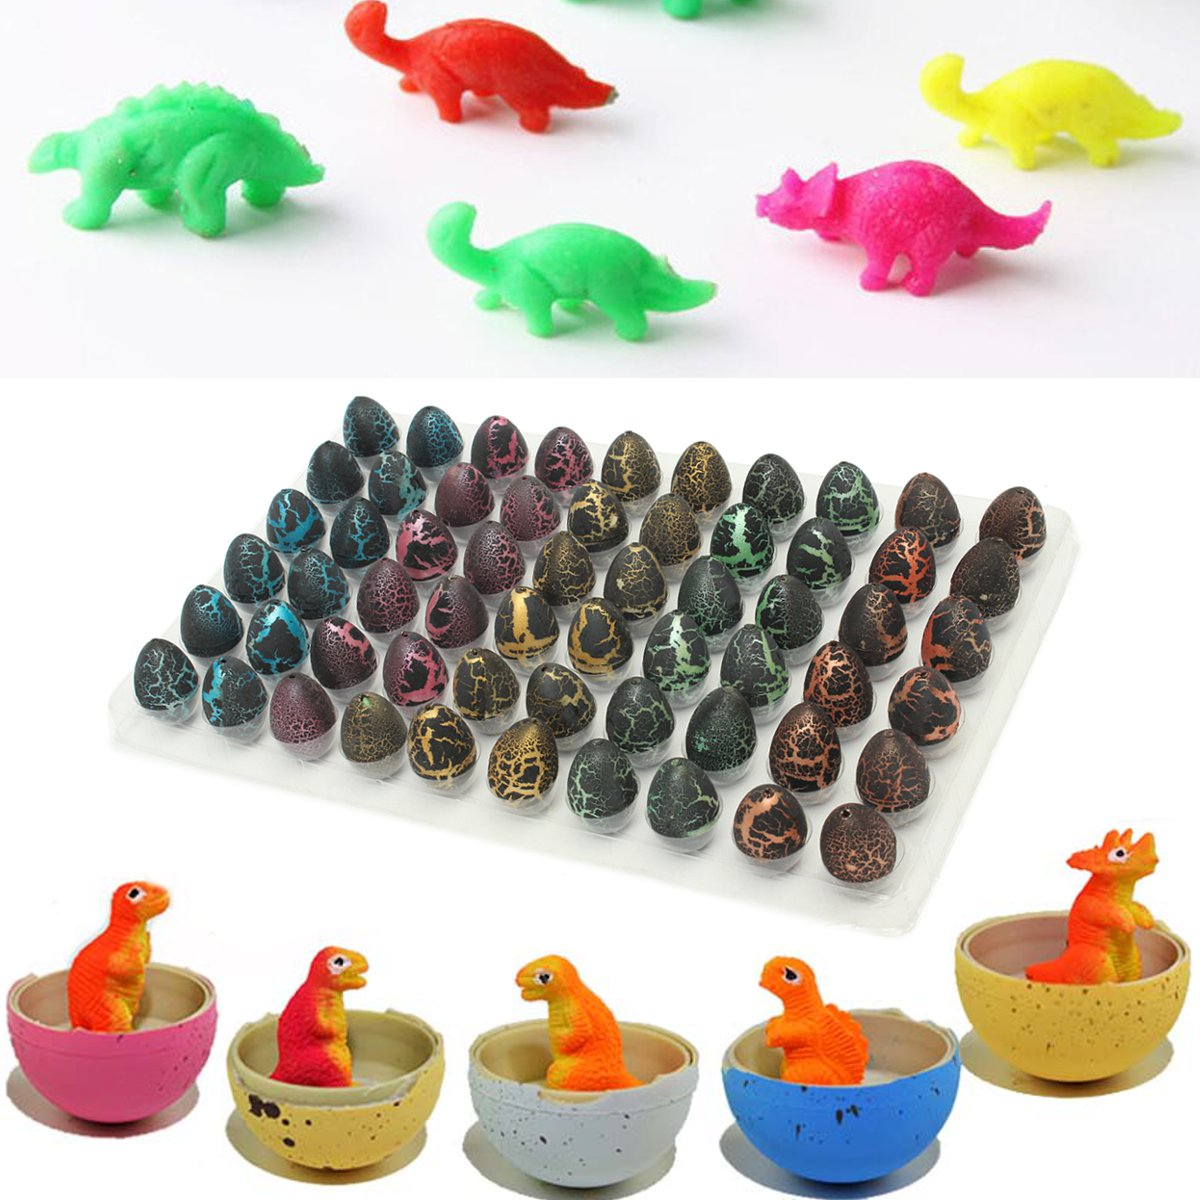 60pcs/set Magic Add Water Dinosaur Eggs Hatching Dino Growing Cute Children Toy Gift Children Kid Funny Toys Gift Gadget